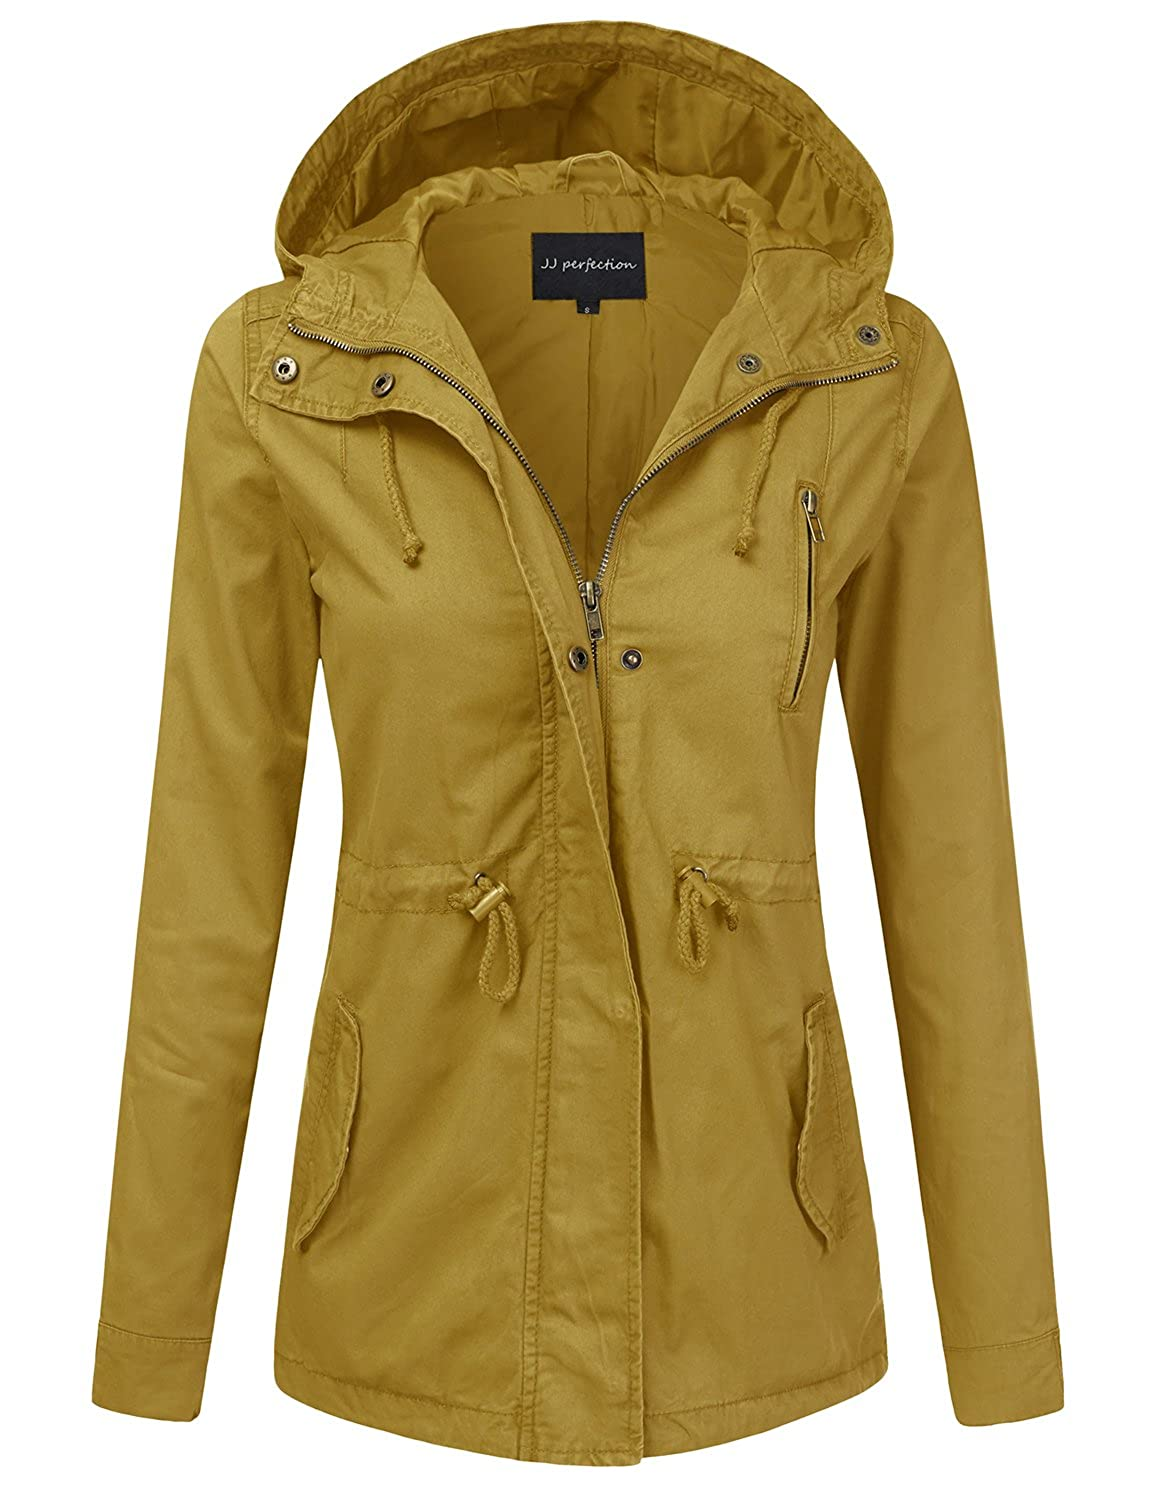 3188f3261d4 JJ Perfection Women's Casual Lightweight Anorak Army Utility Hoodie Jacket:  Amazon.ca: Clothing & Accessories